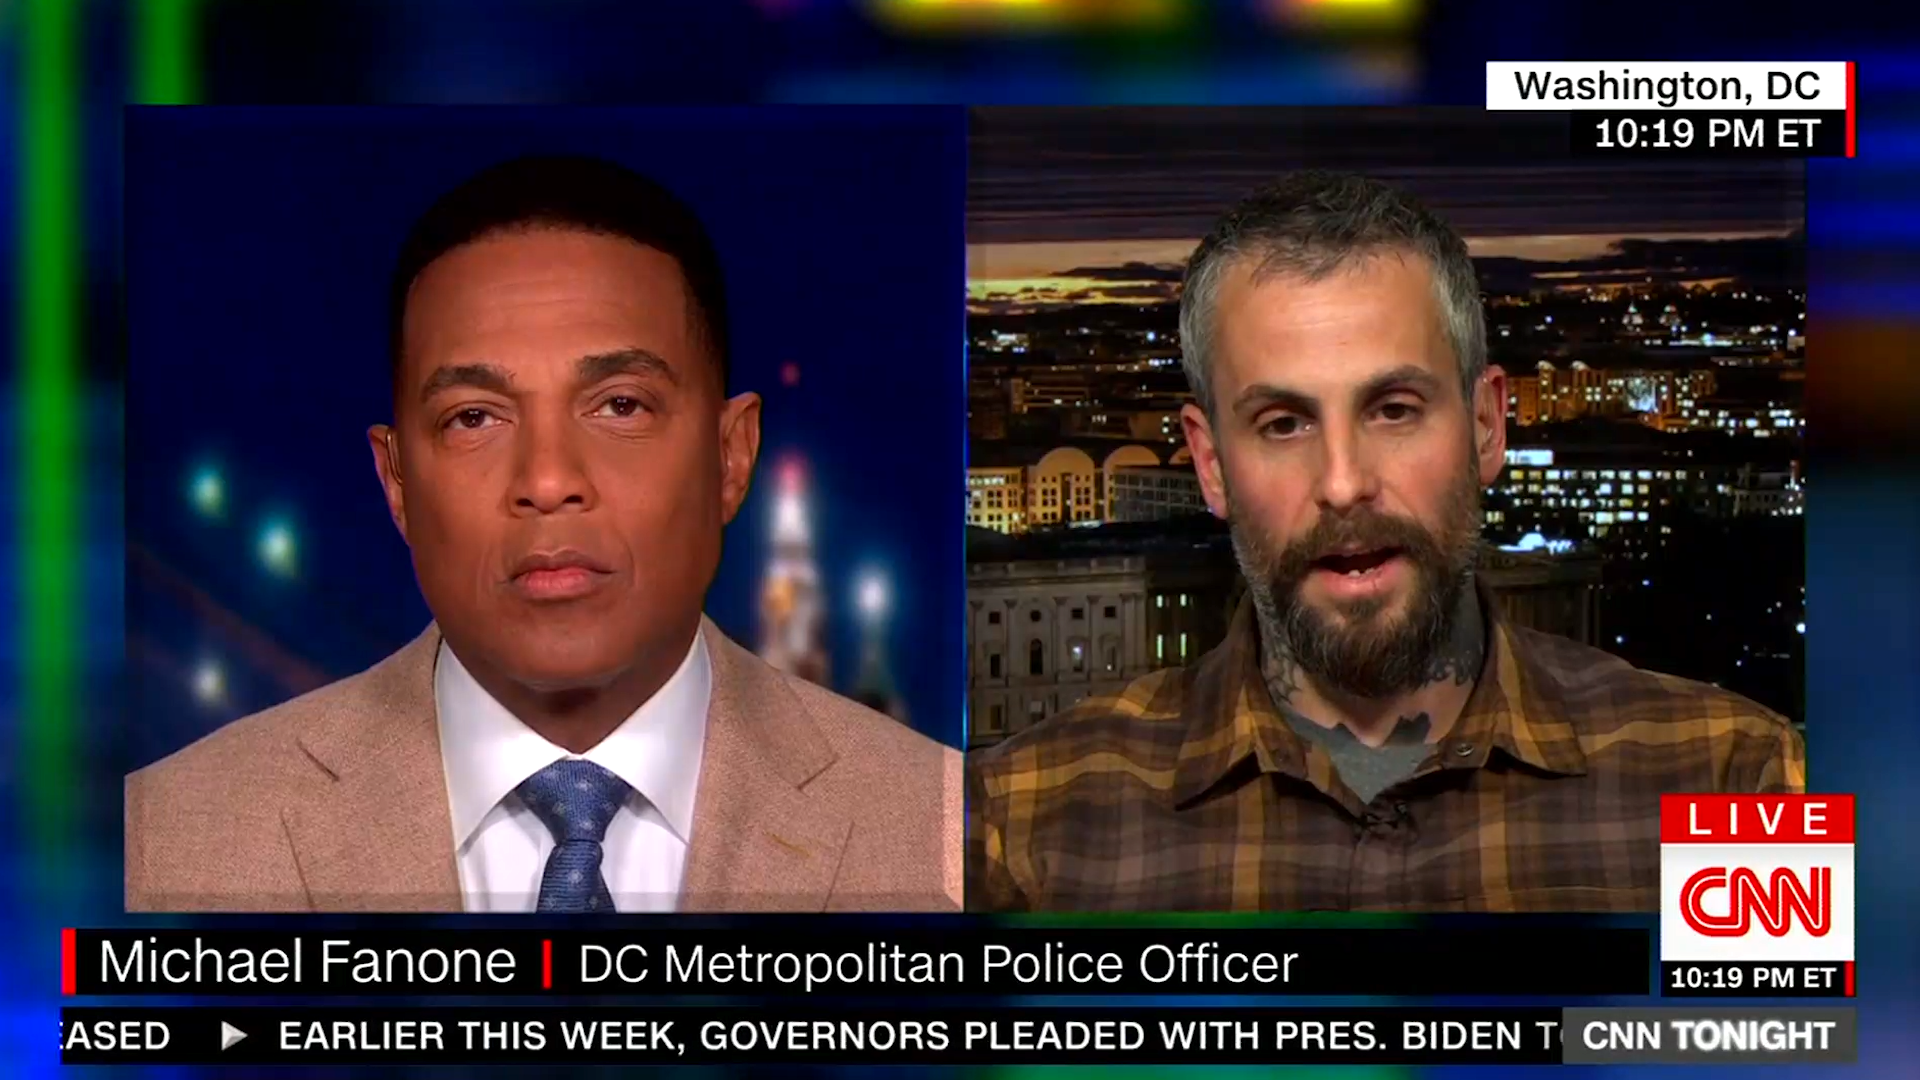 DC police officer reacts to bodycam video of him being attacked on Jan. 6: 'It broke me'